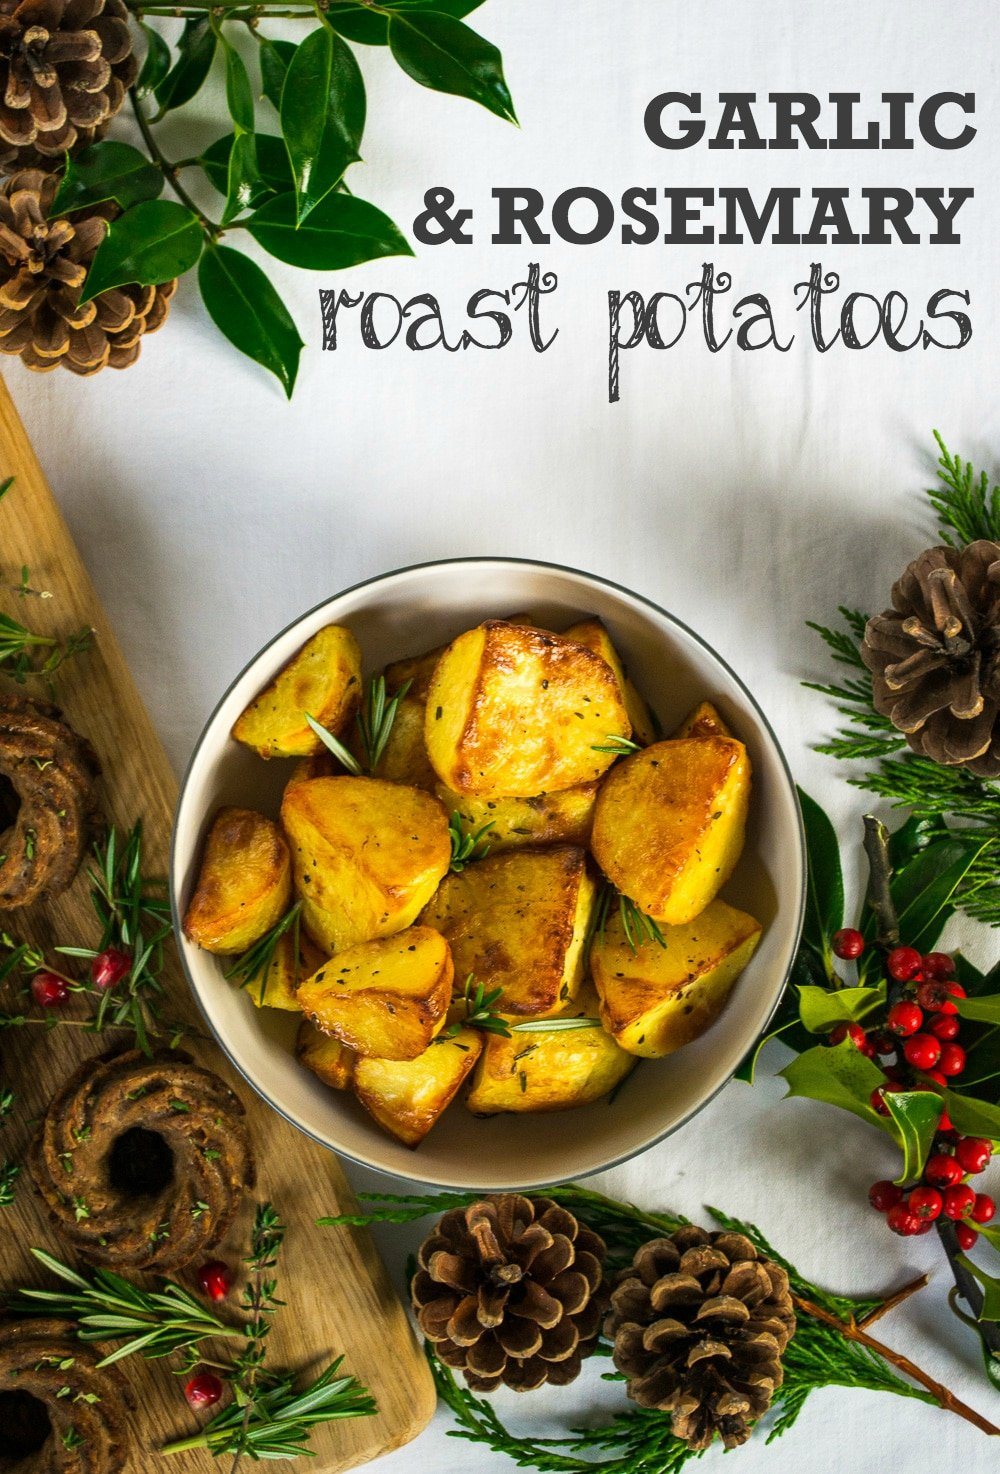 ... Dinner Recipe: Garlic & Rosemary Roast Potatoes - The Veg Space